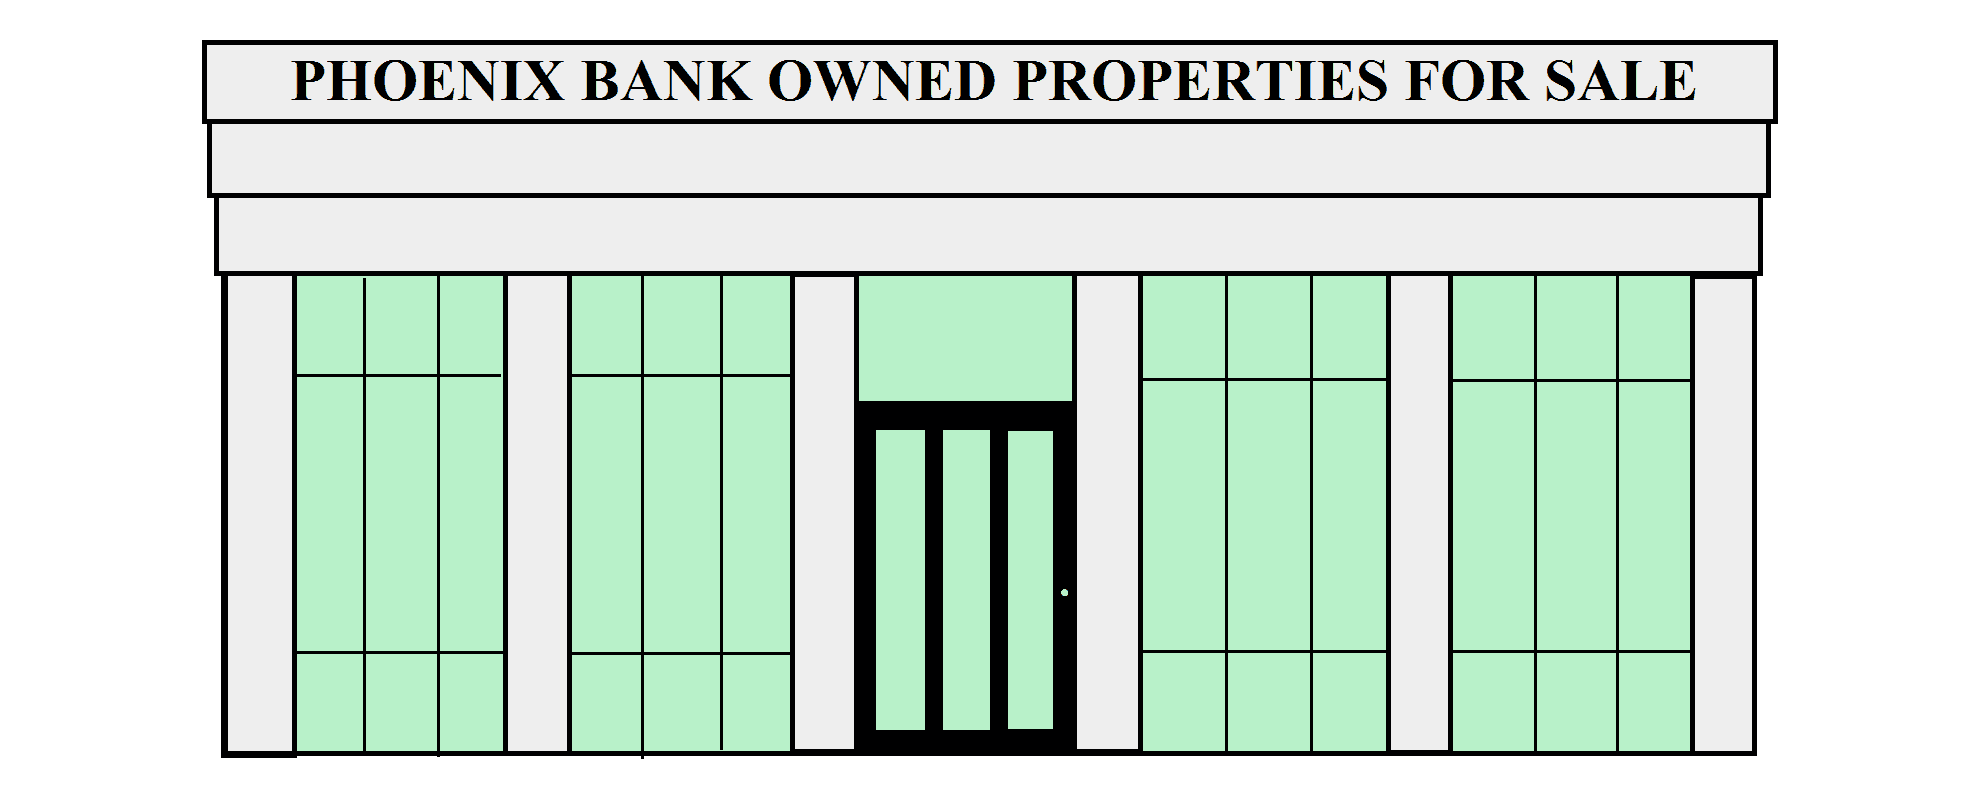 Phoenix Bank Owned